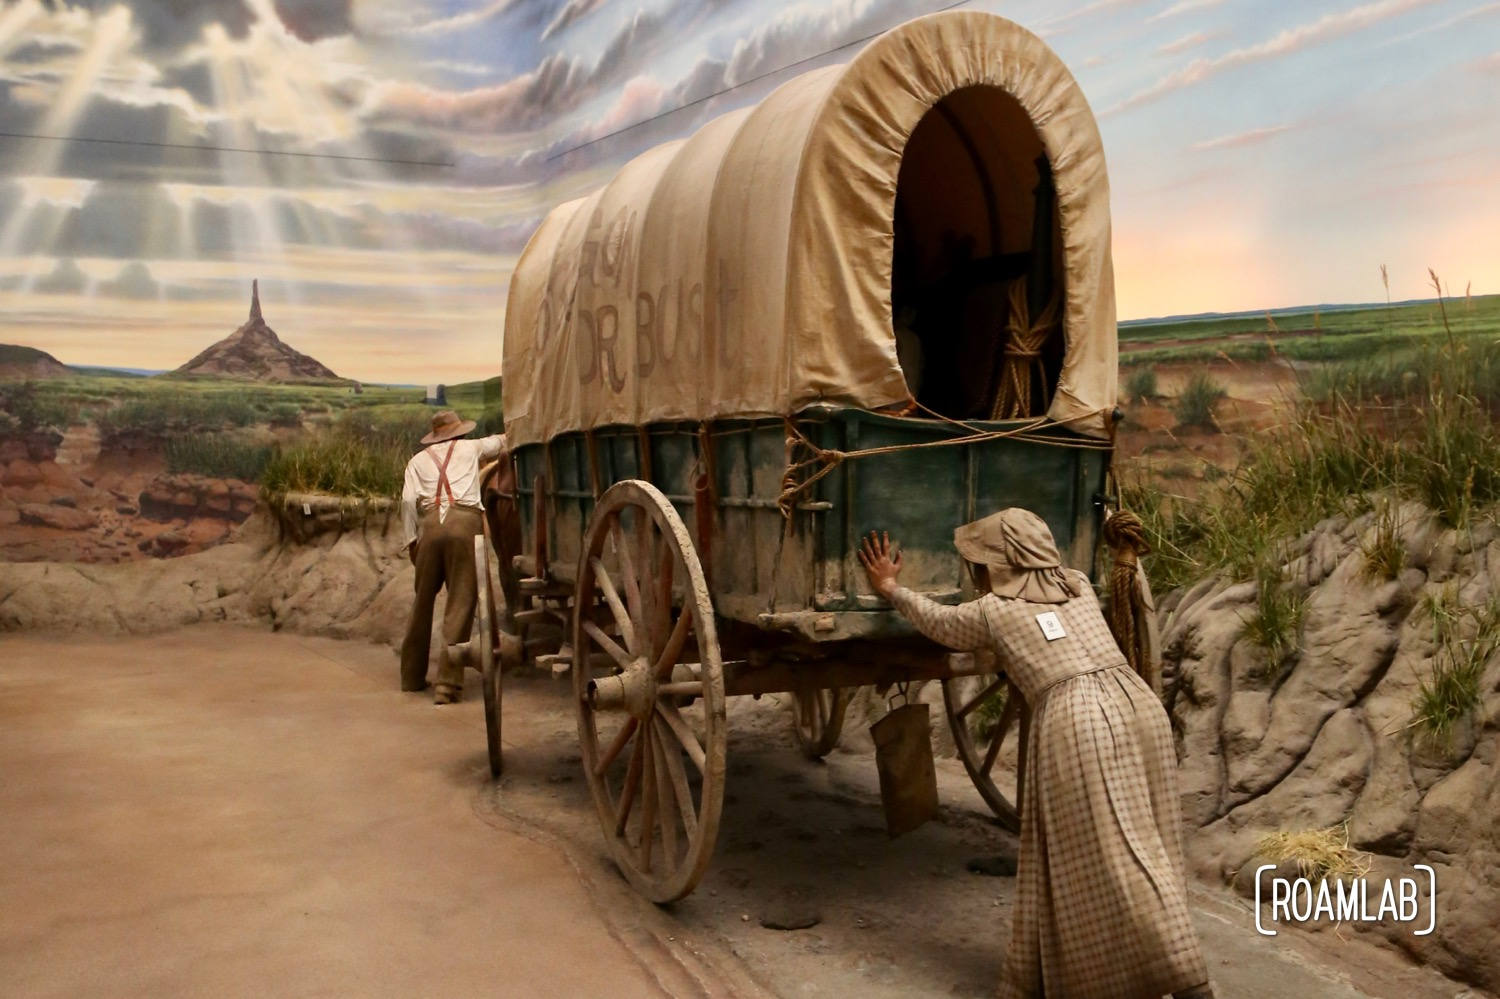 From wagon trains to road trips: discovering the history of the west at the Great Platte River Road Archway Monument in Kearney, Nebraska